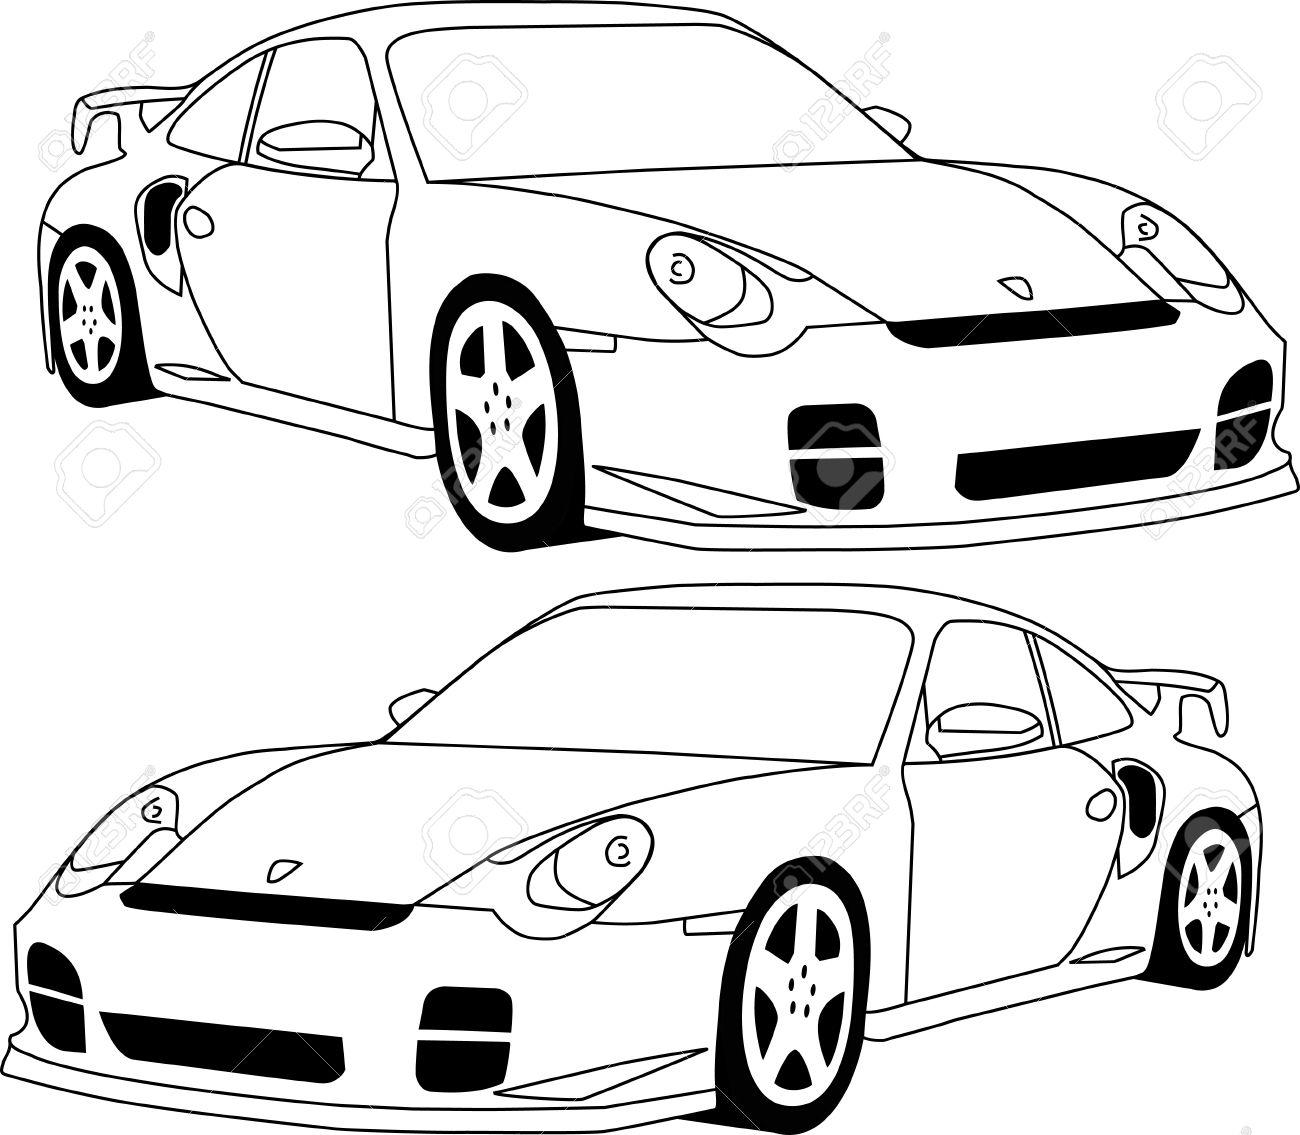 Porsche Line Drawing At Getdrawings